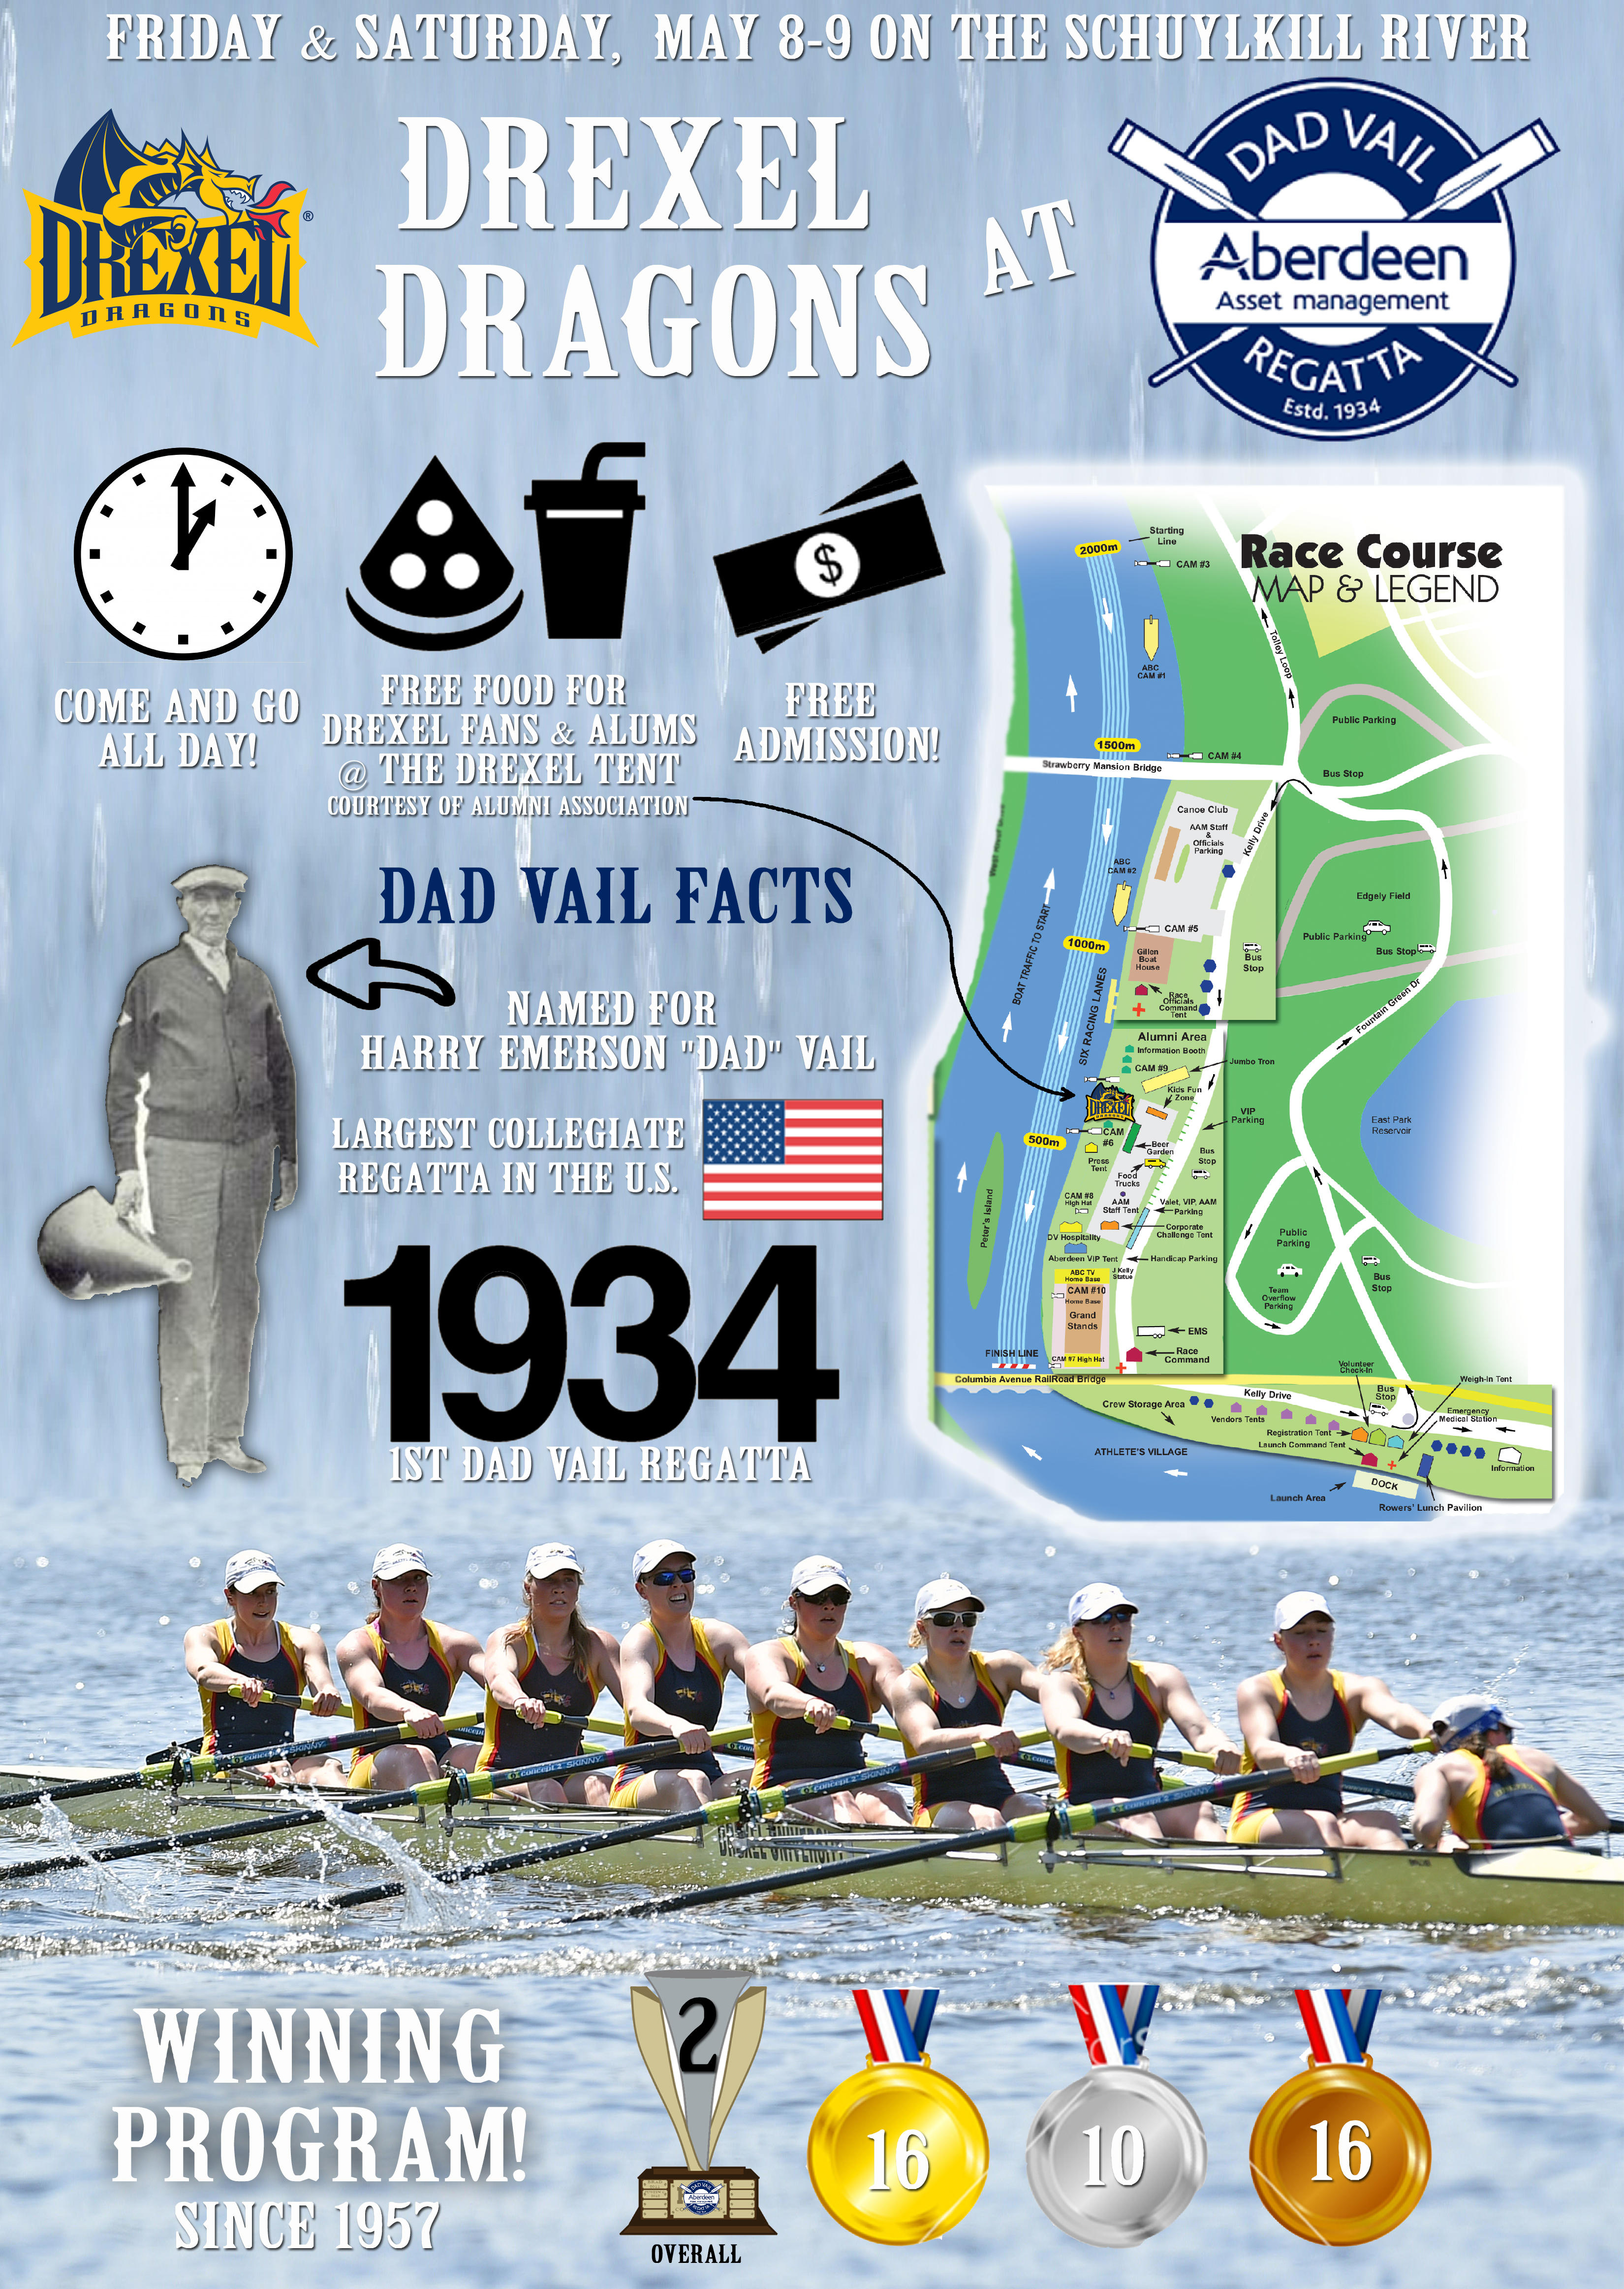 Some facts and figures on the Dad Vail Regatta from Drexel Athletics.